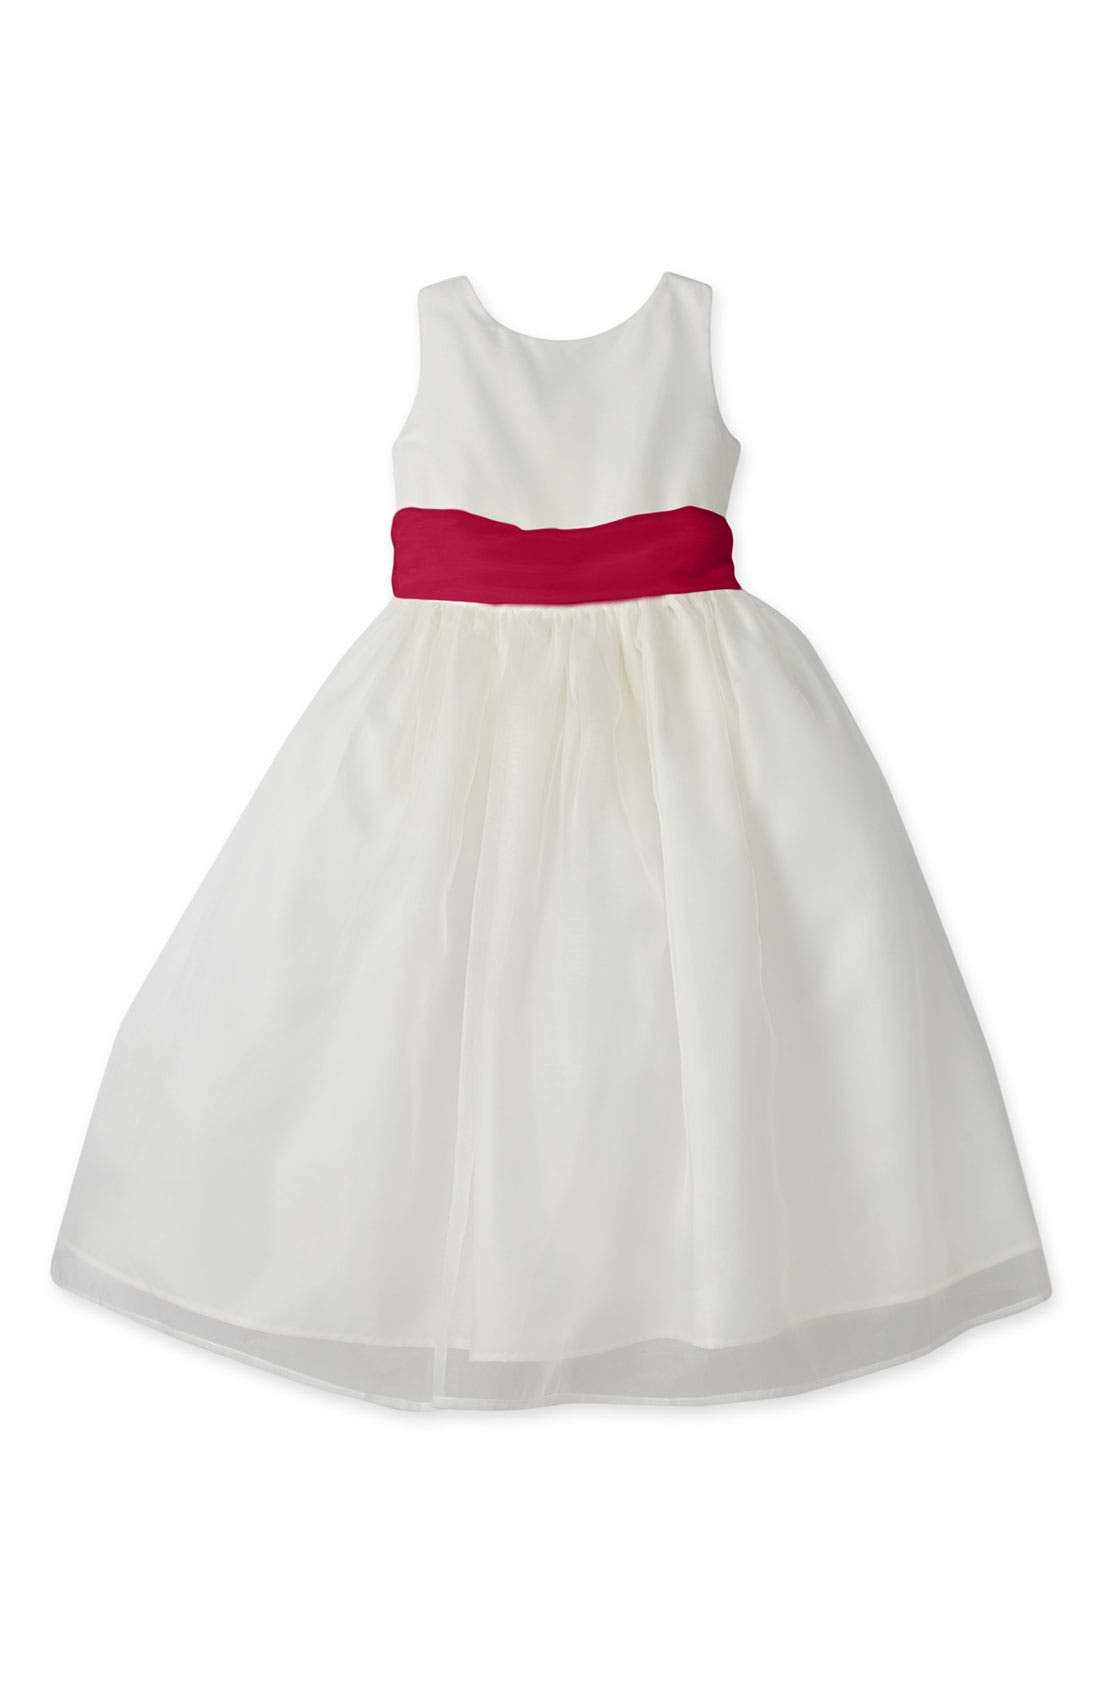 f1bf865c15d8 Baby Girls' Clothing: Dresses, Bodysuits & Footies   Nordstrom